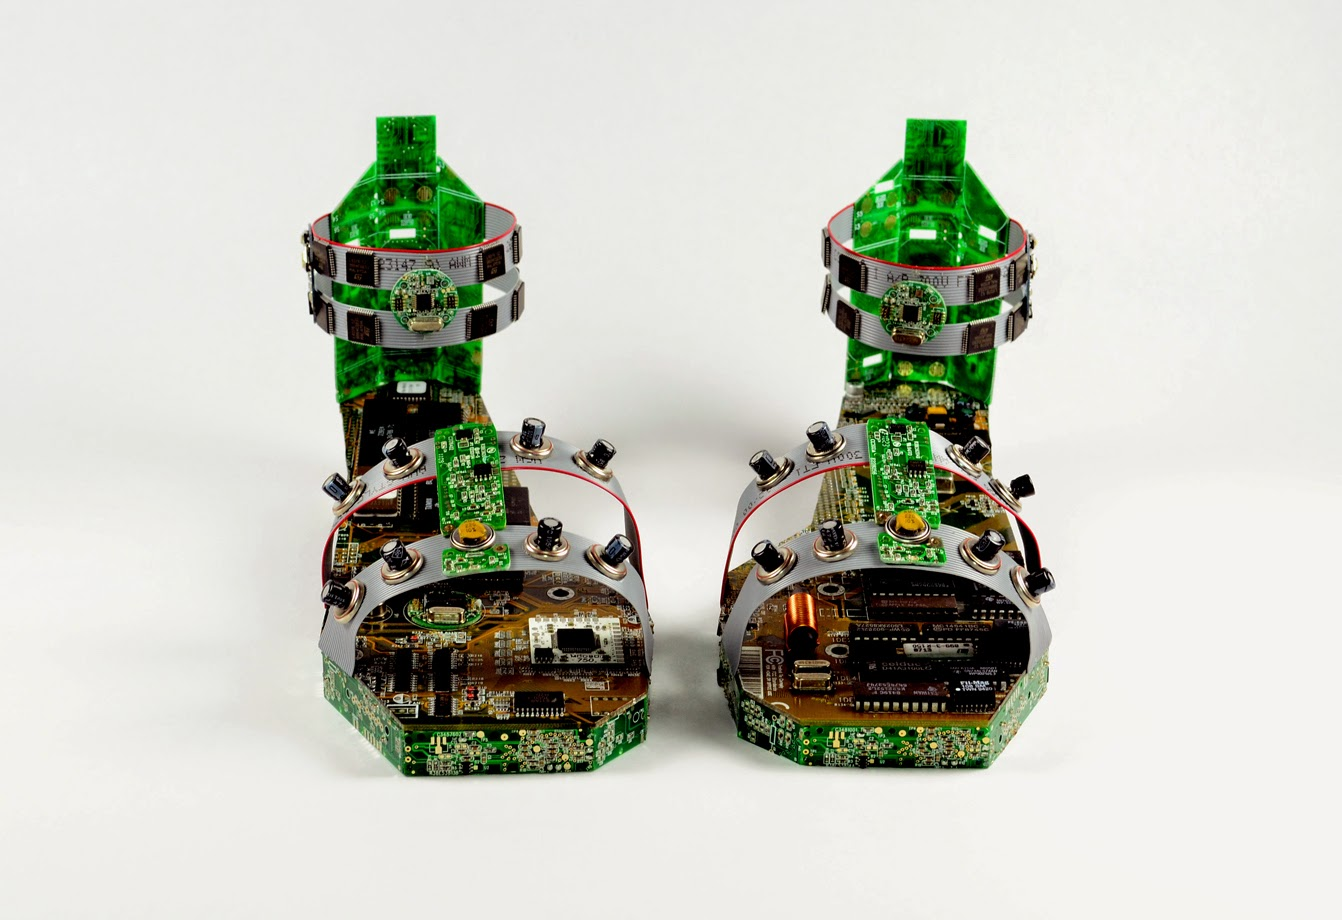 12-Shoes-2-Steven-Rodrig-Upcycle-PCB-Sculptures-from-used-Electronics-www-designstack-co